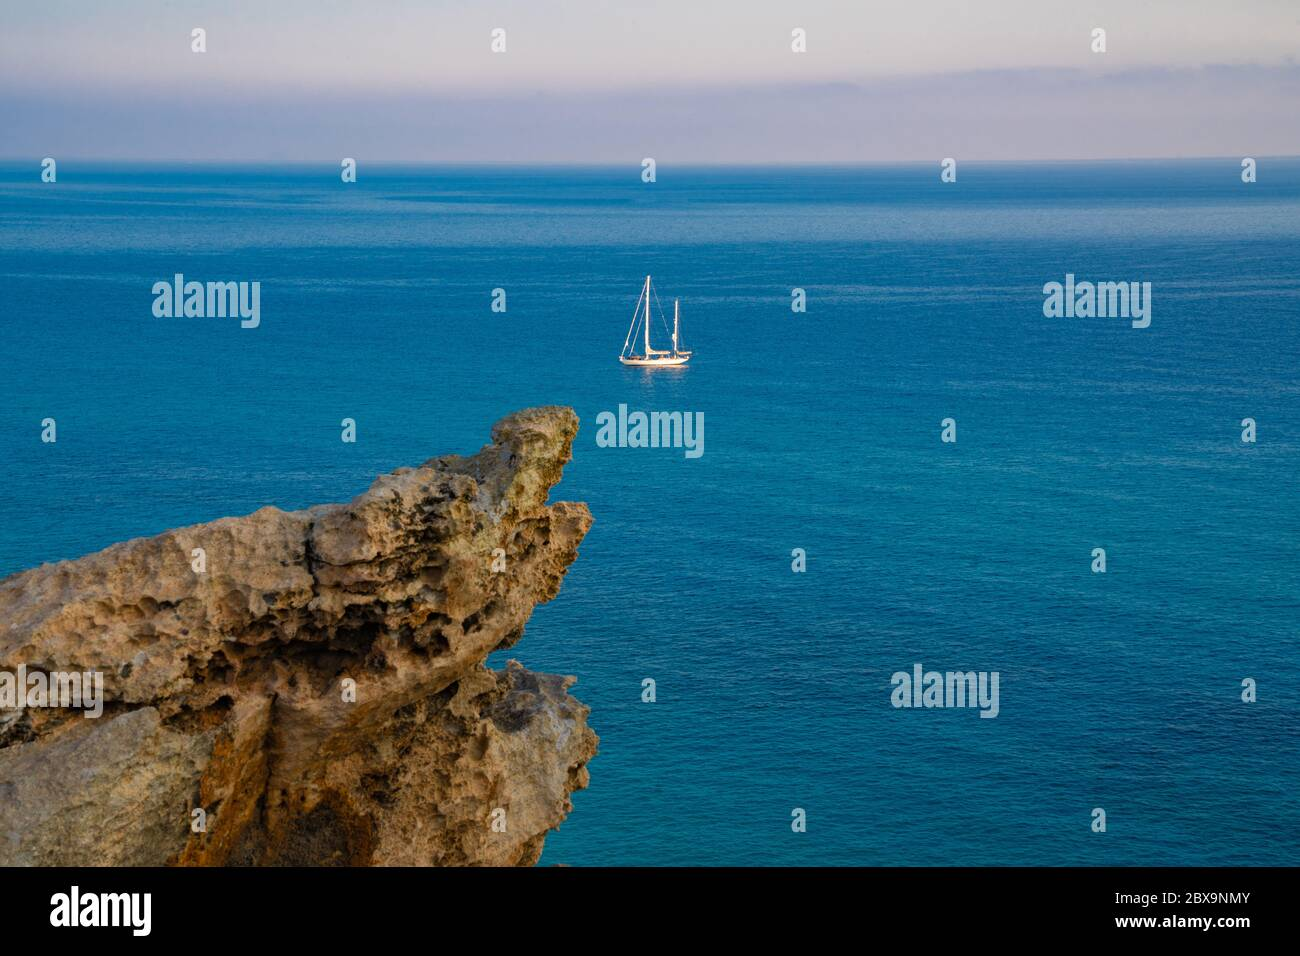 View at the sea from rocks on a sailing boat Stock Photo